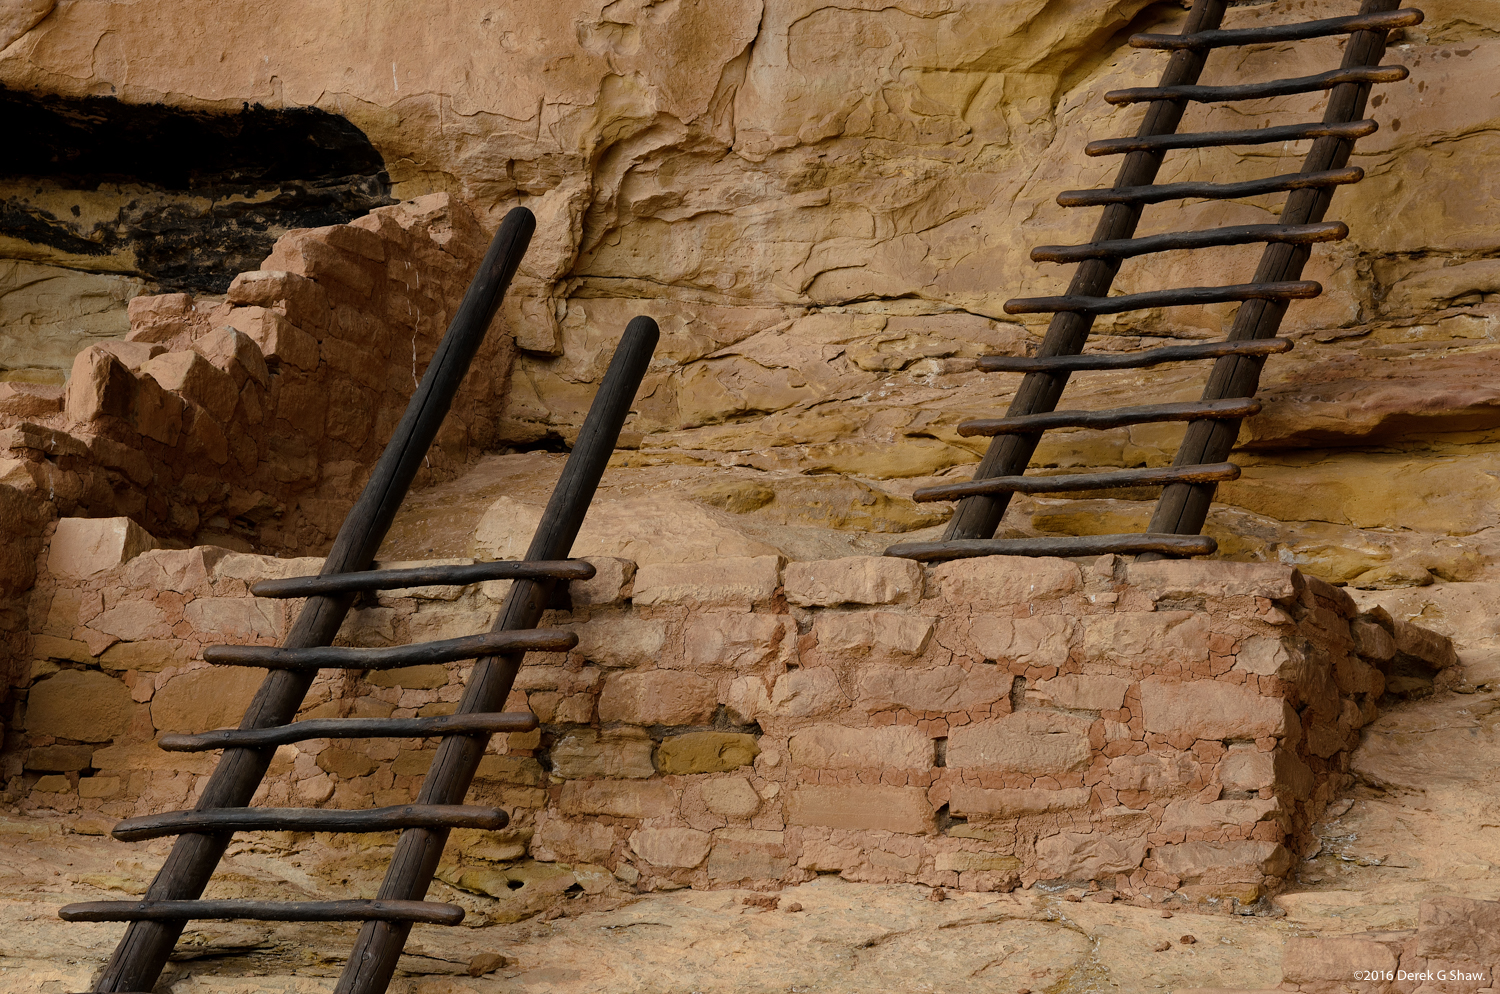 Replicas of Ancient Ladders #2